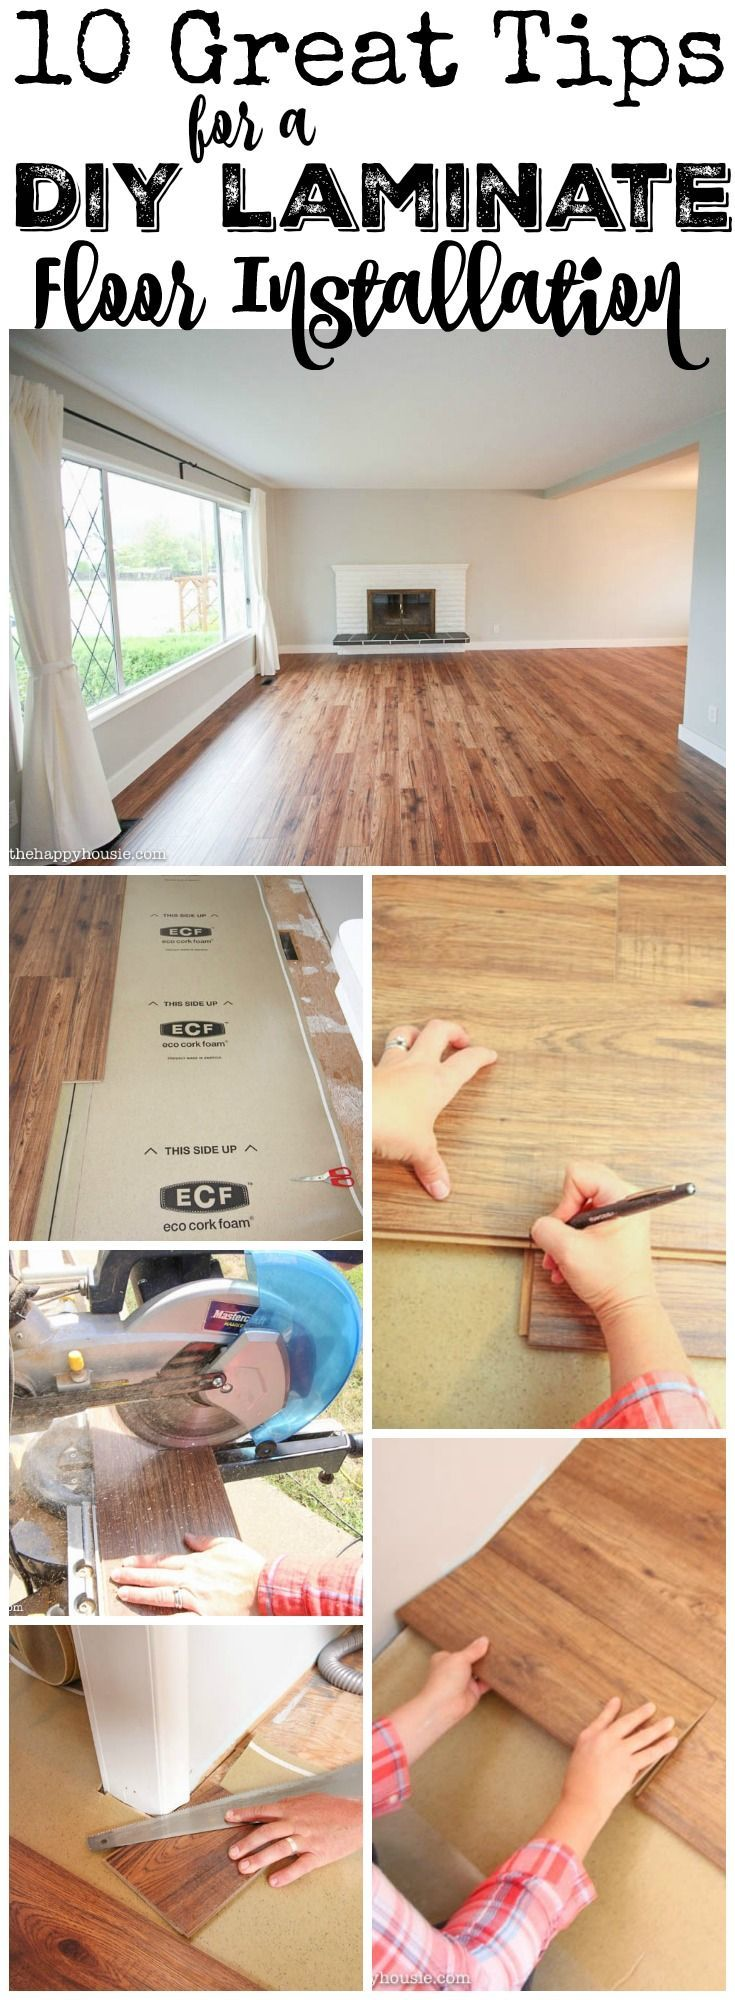 10 Great Tips for a DIY Laminate Floor Installation at thehappyhousie.com